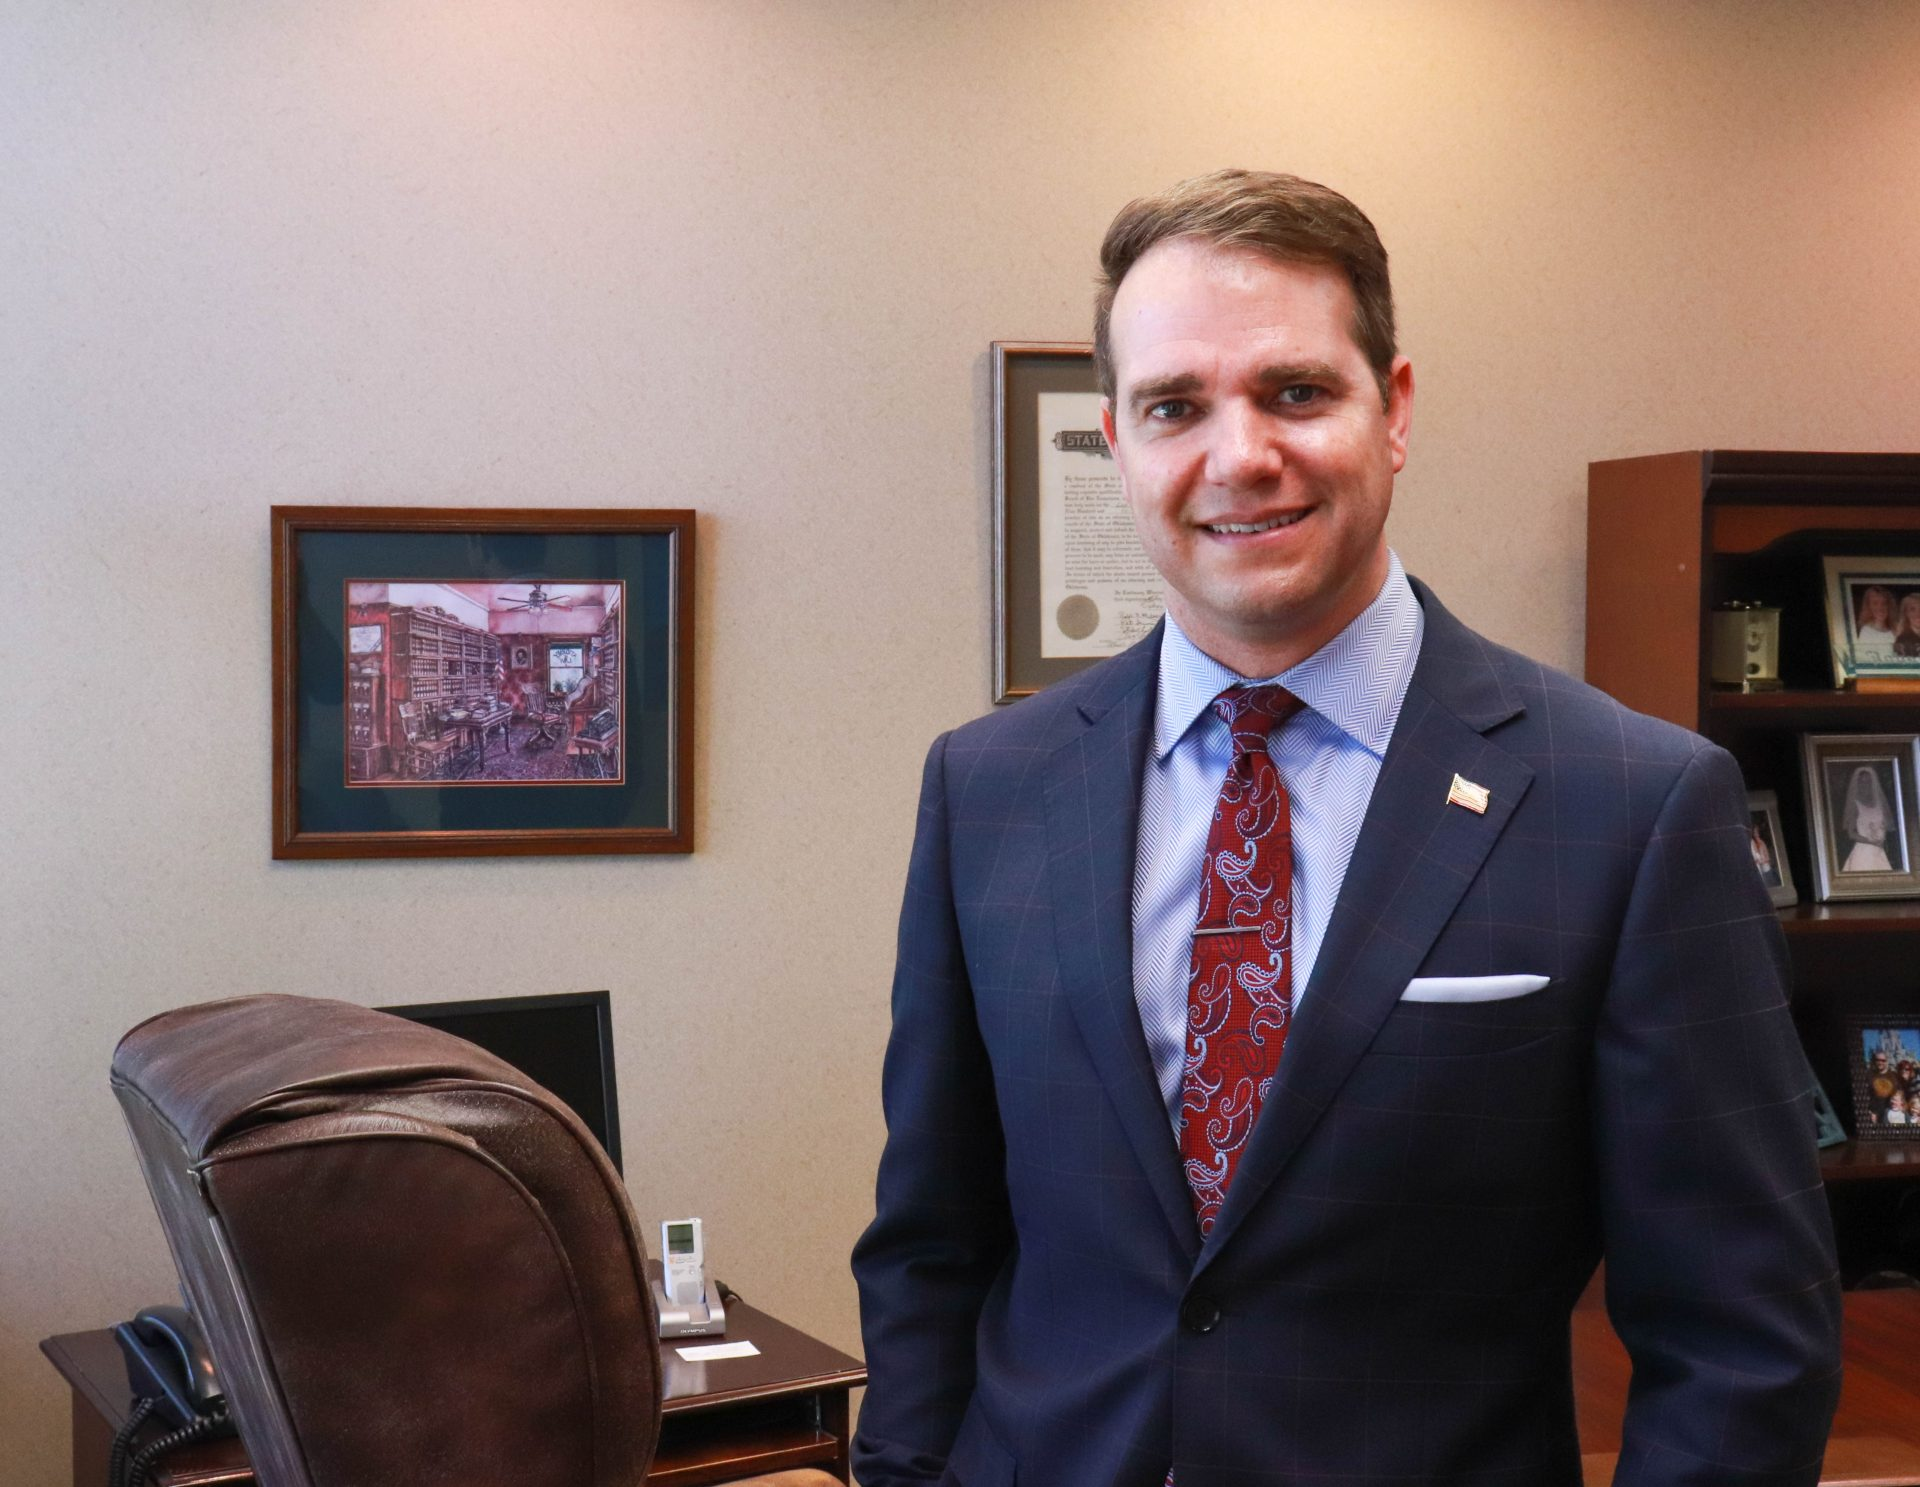 Randy Grau stands in an office at his law firm.